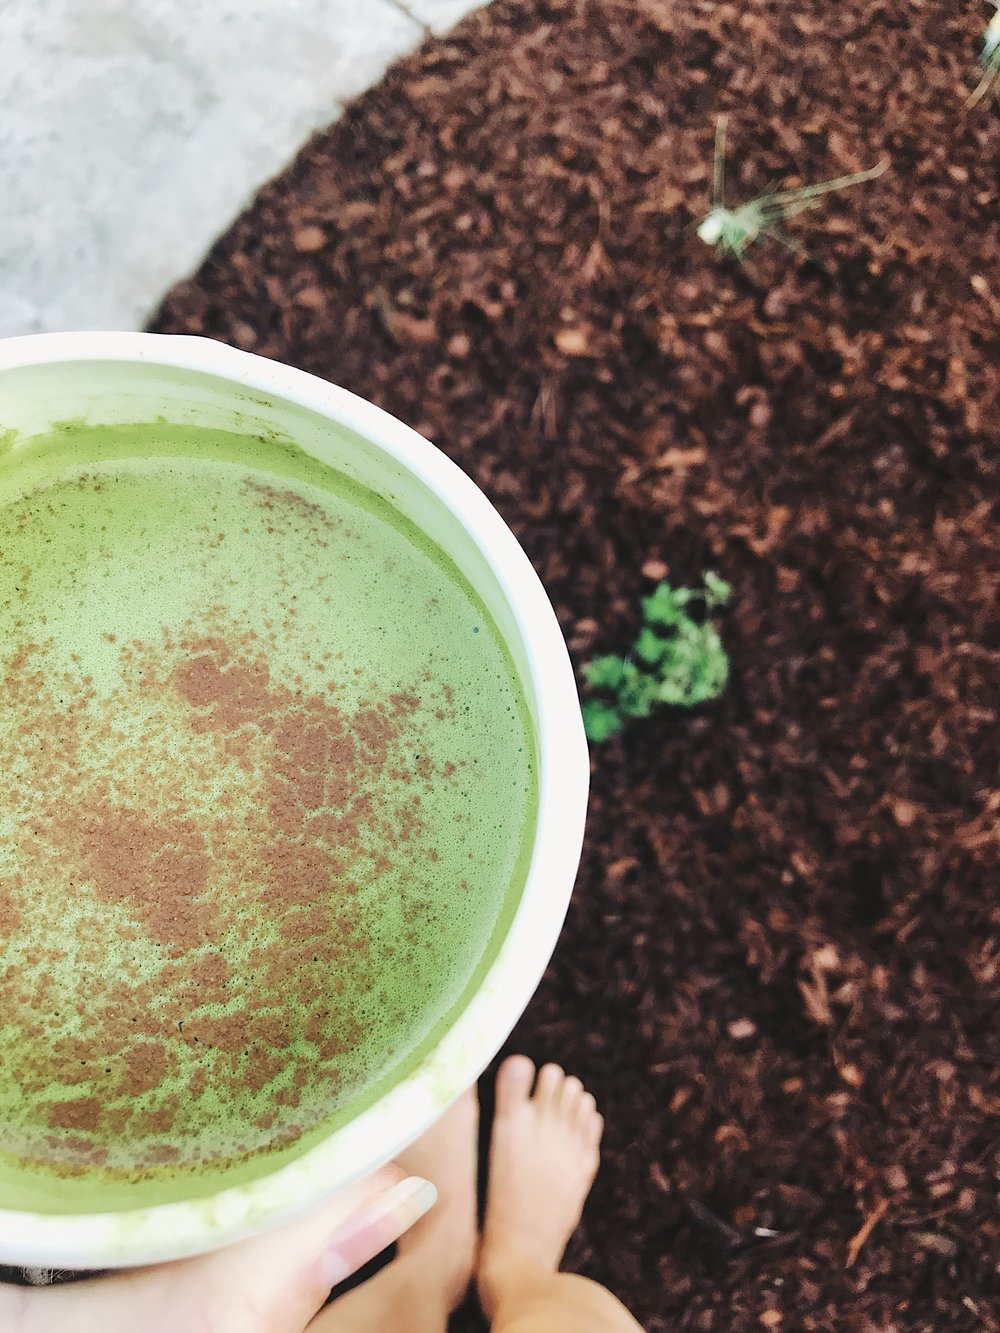 @janny.organically's cover photo for 'Matcha: The Green Tea That Does it All'